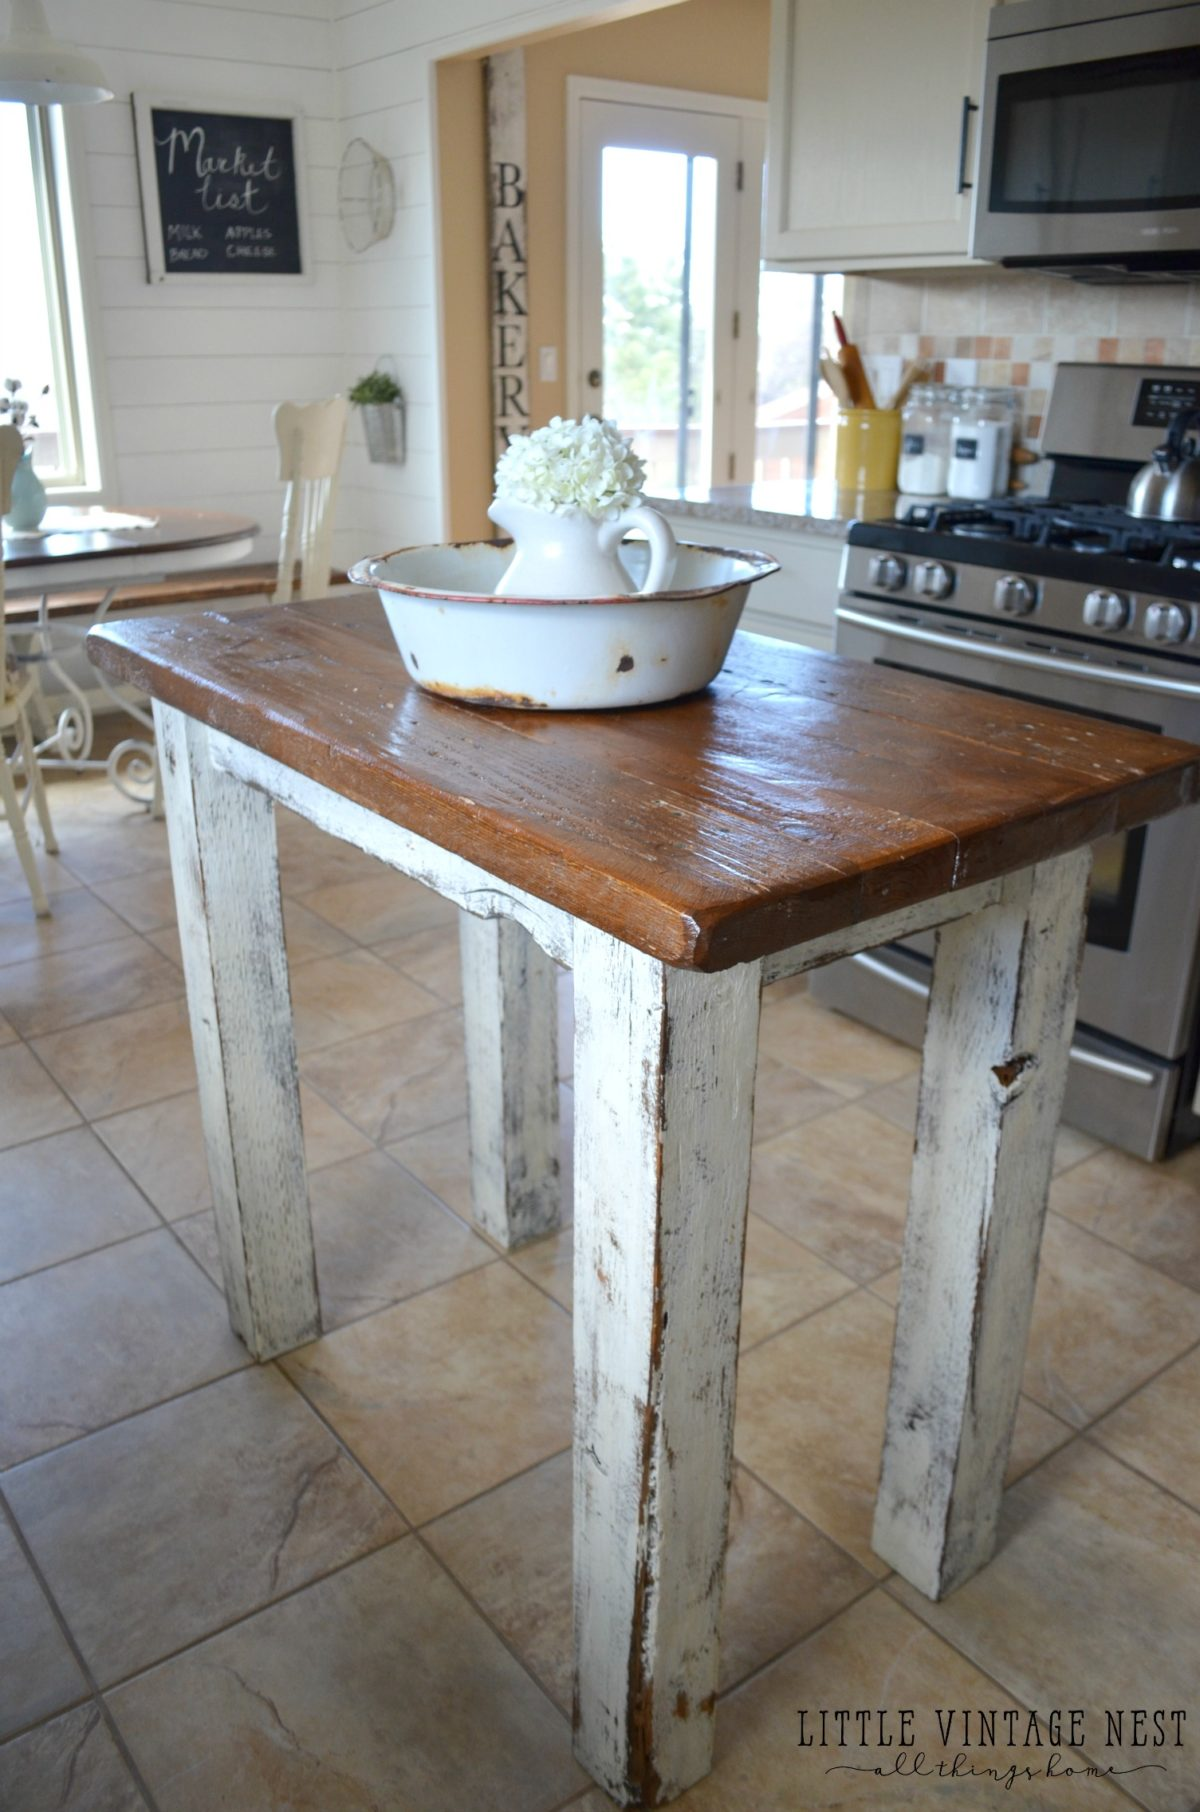 Rustic Kitchen Island Little Vintage Nest - Farmhouse style kitchen islands